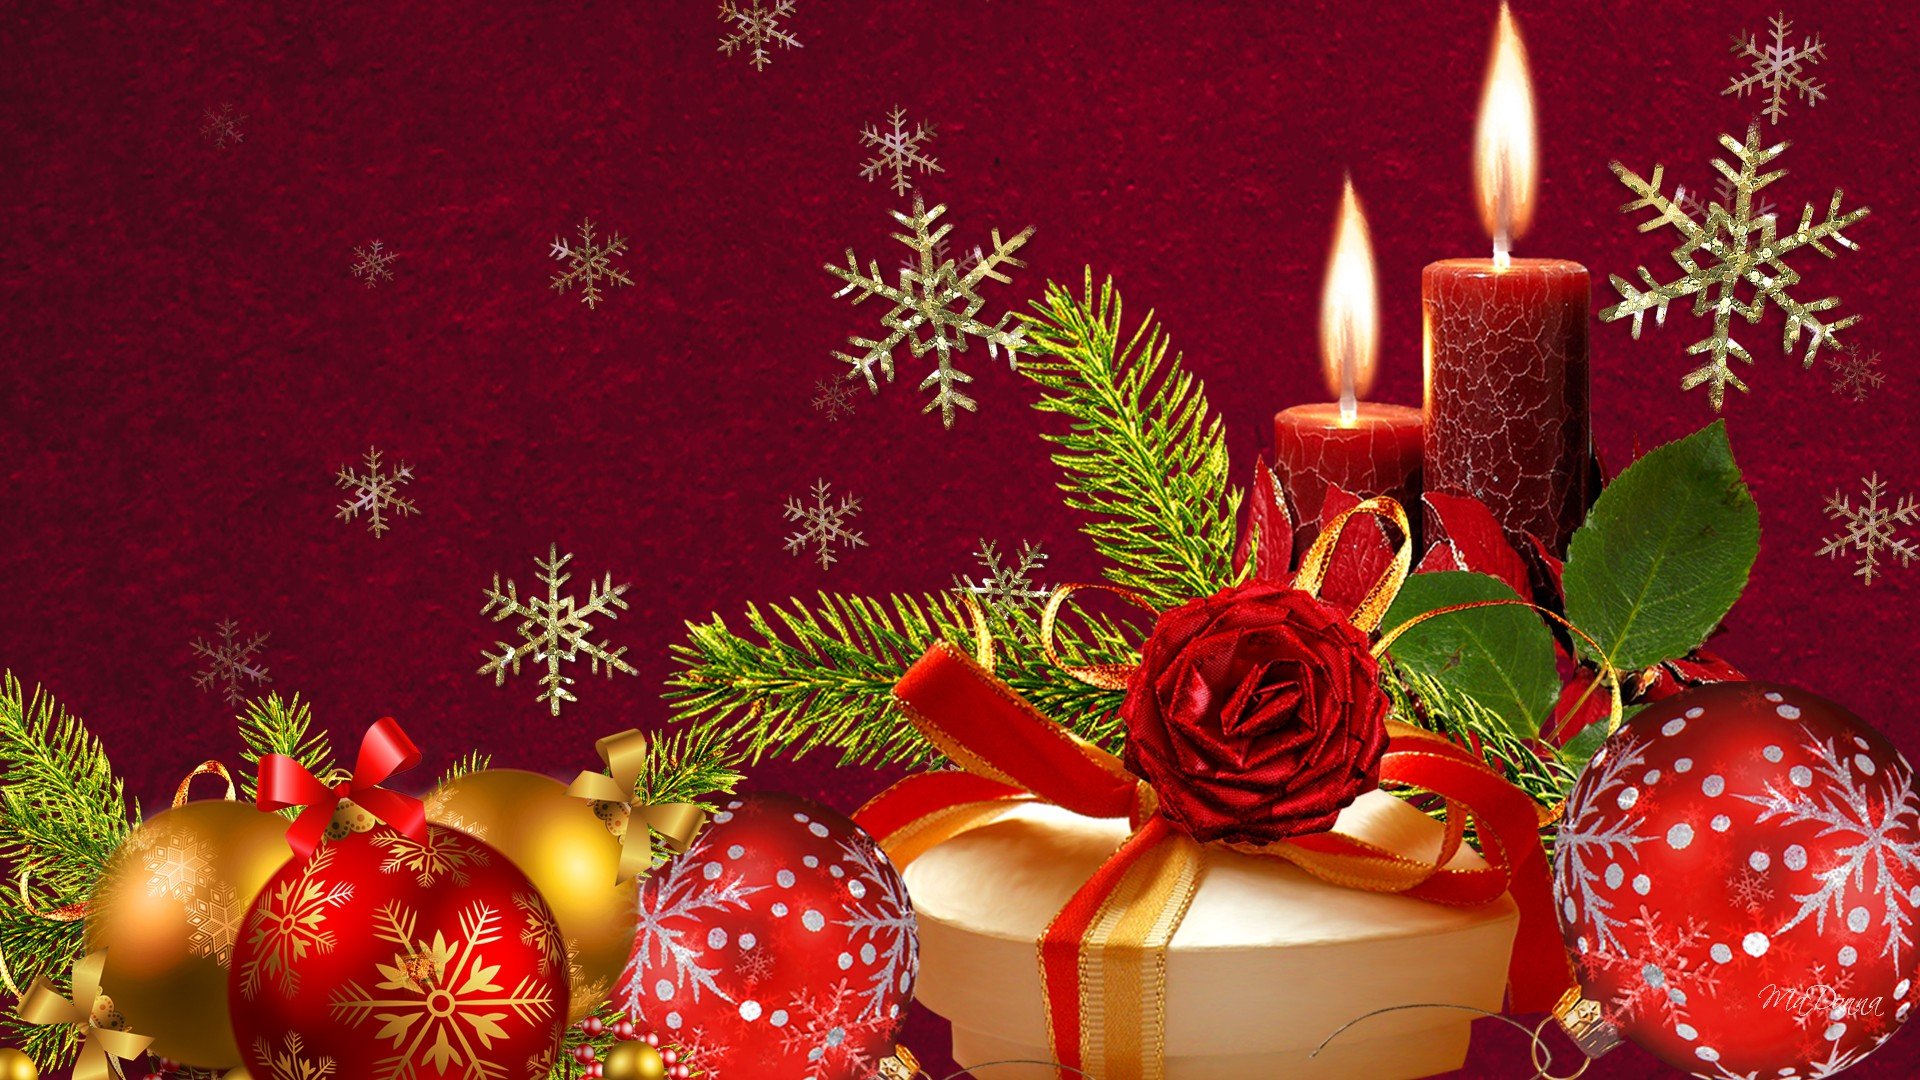 New Year gift ornament Backgrounds